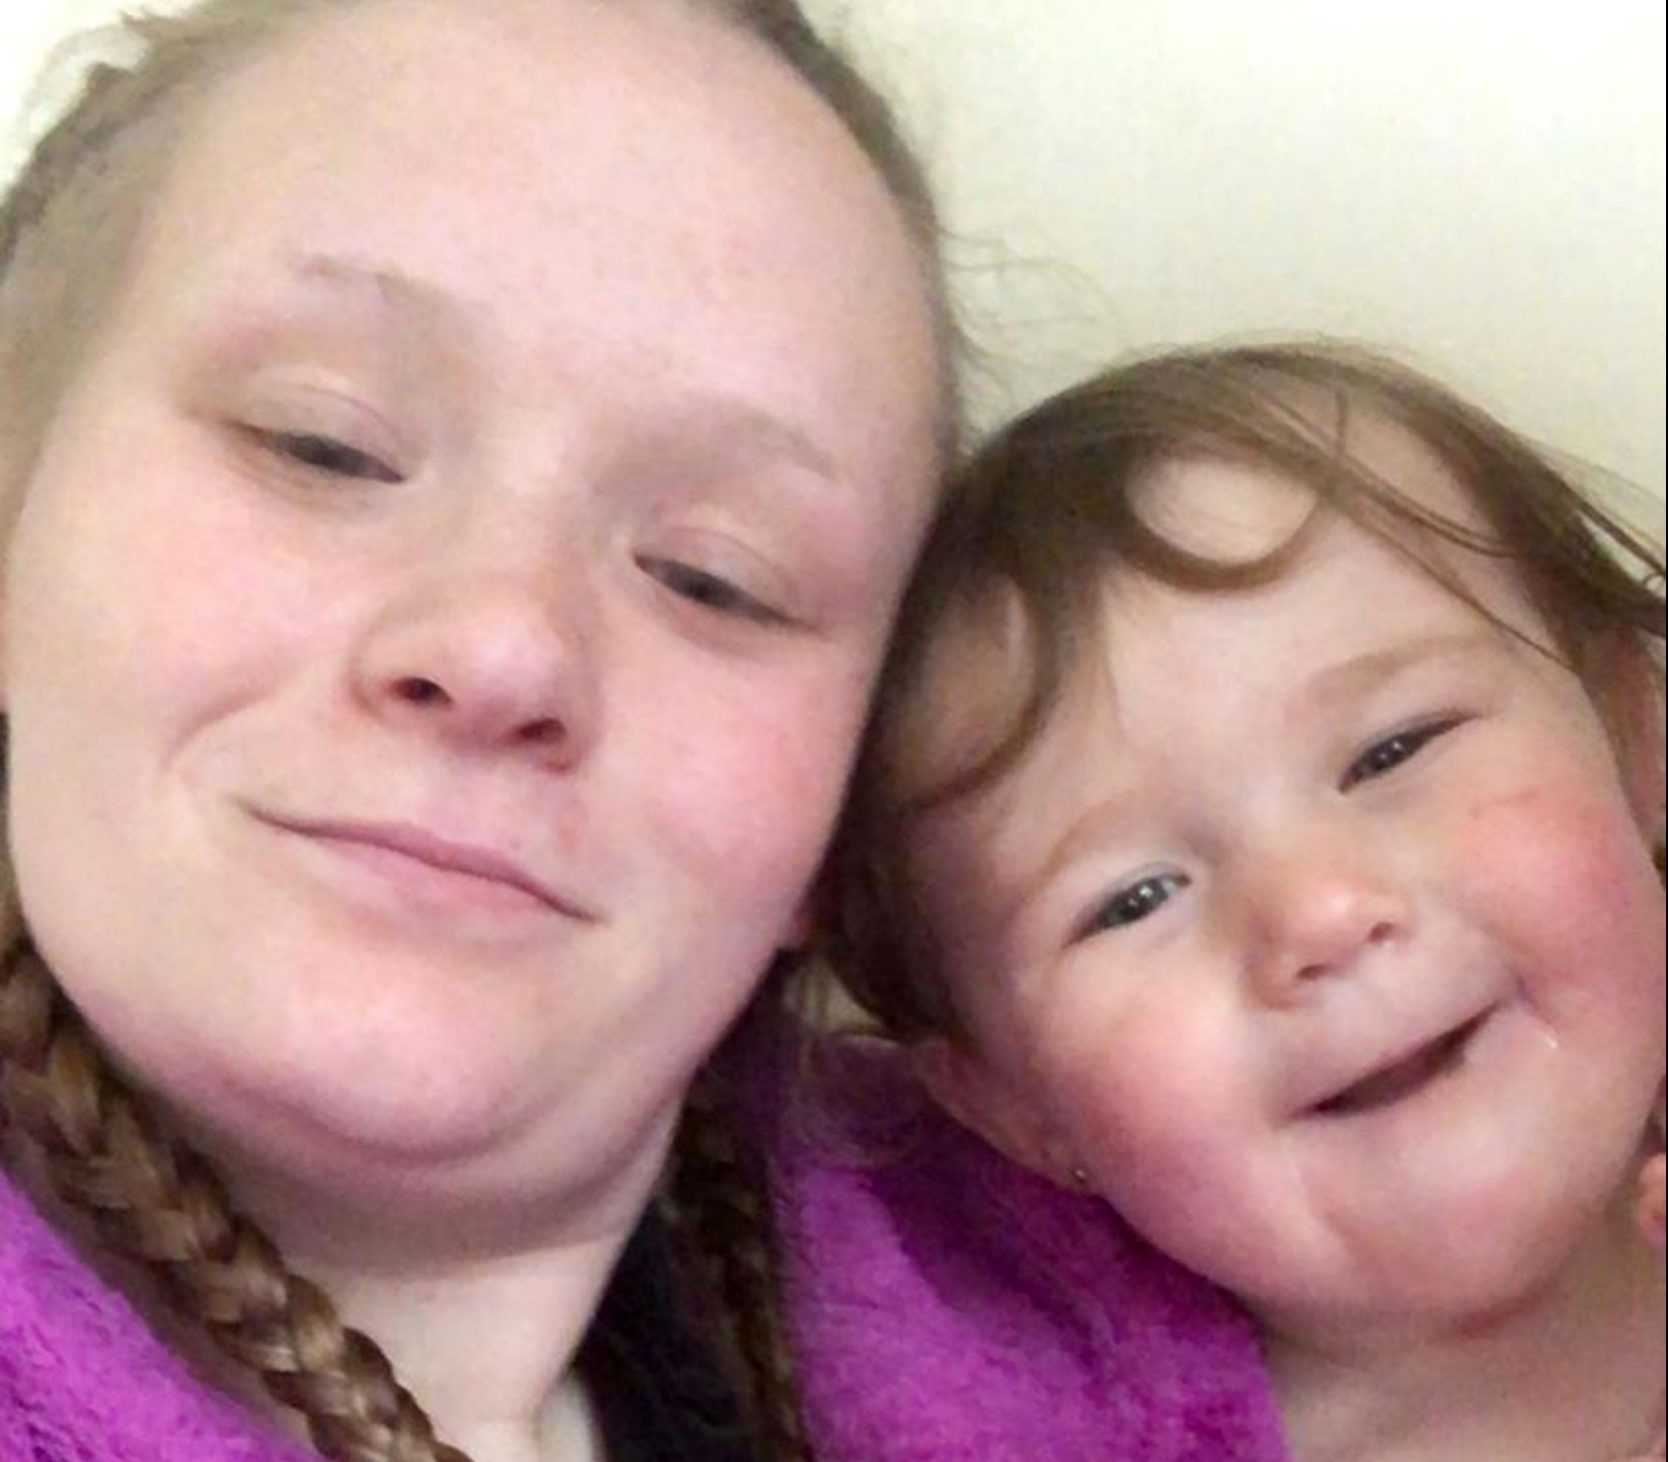 PIC FROM Mercury Press - (PICTURED: Mum Cathryn Raine with daughter Freya Yhia-Raine.) - A traumatised toddler was left with a huge purple bruise on her ear after she was viciously attacked by a SEAGULL which tried to steal her Gregg's pasty. One-year-old Freya Yhia-Raine had just begun tucking into the tasty treat when the seagull dived into her pushchair and tried to take the pastry out of her mouth. Mum Cathryn Raine, 23, said the tot was determined to hold on to the cheese pasty and the ensuing tussle left her with a large painful bruise covering her left ear.SEE MERCURY COPY